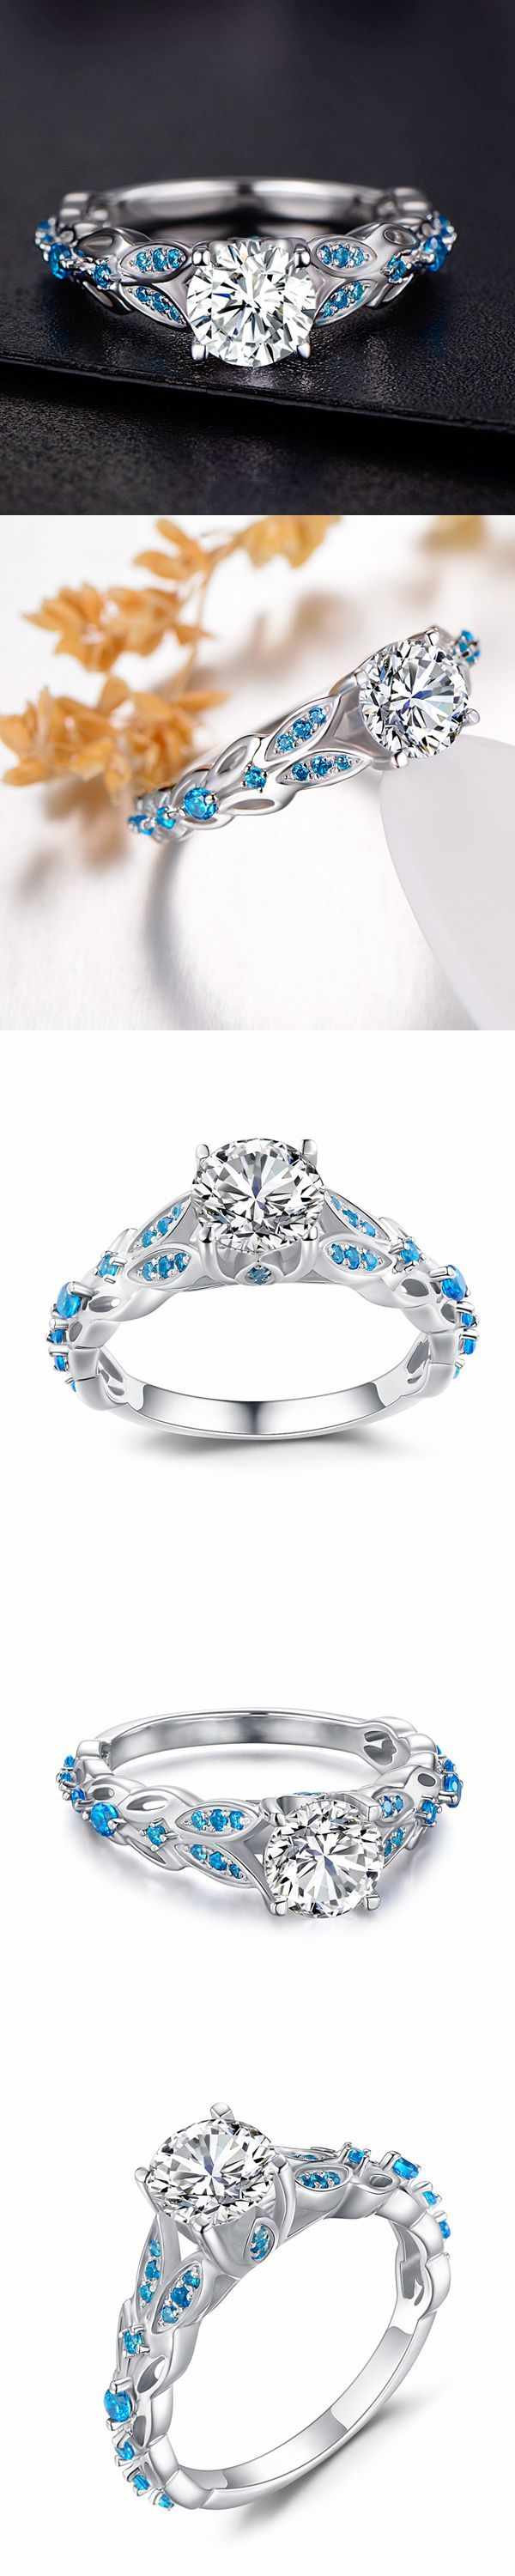 Lajerrio Jewelry Round Cut White Sapphire and Aquamarine Sterling Silver Engagement Ring